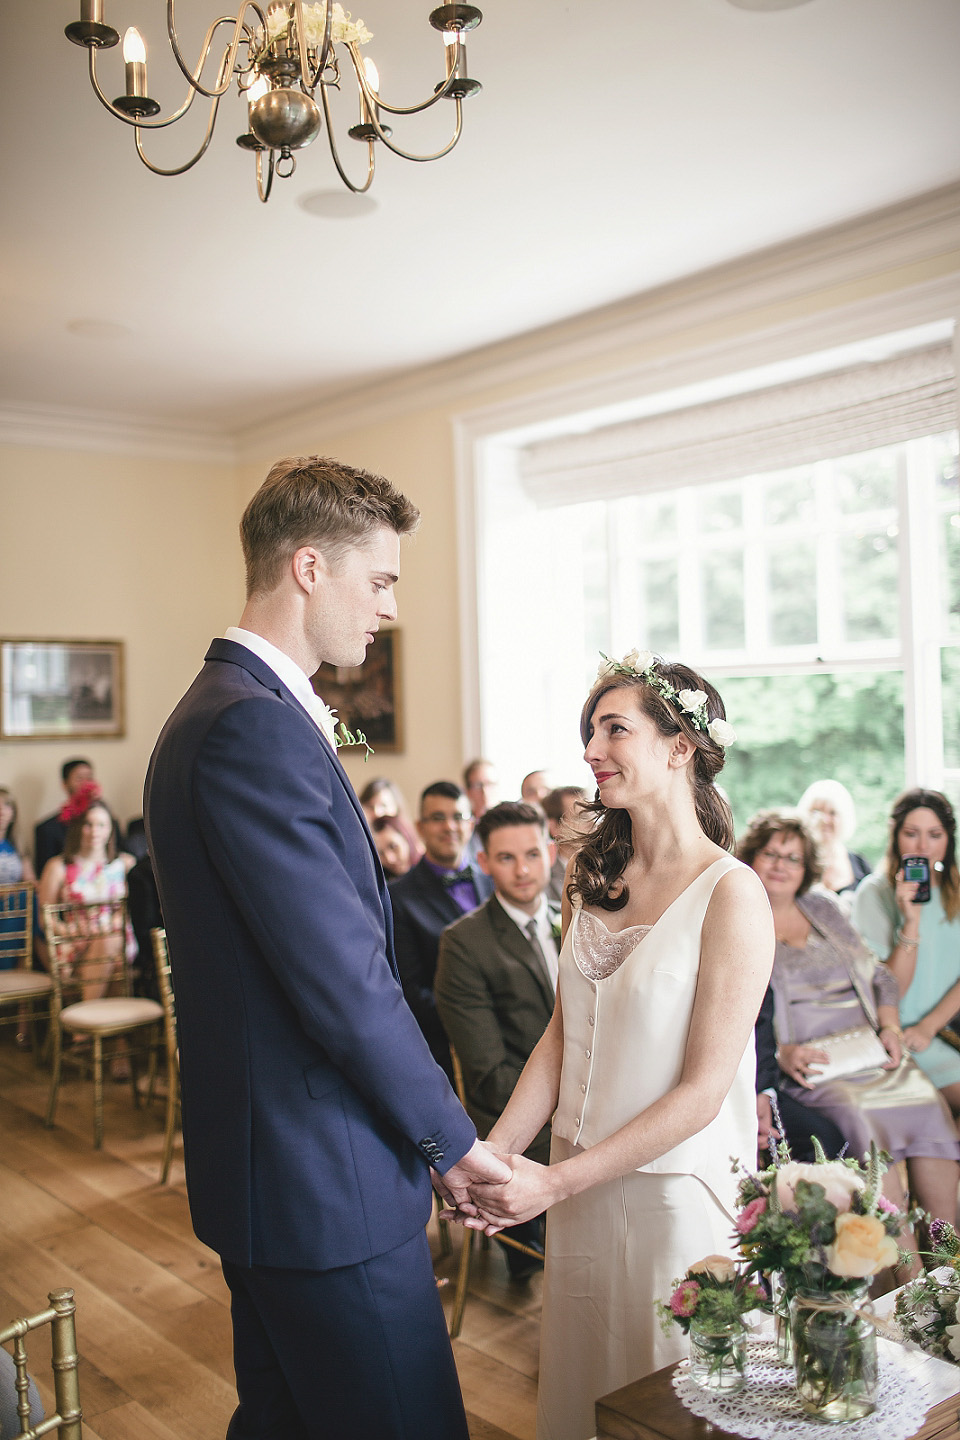 A Pre-Loved Élise Hameau Gown for a Romantic and Elegant Wedding at Pembroke Lodge  (Weddings )